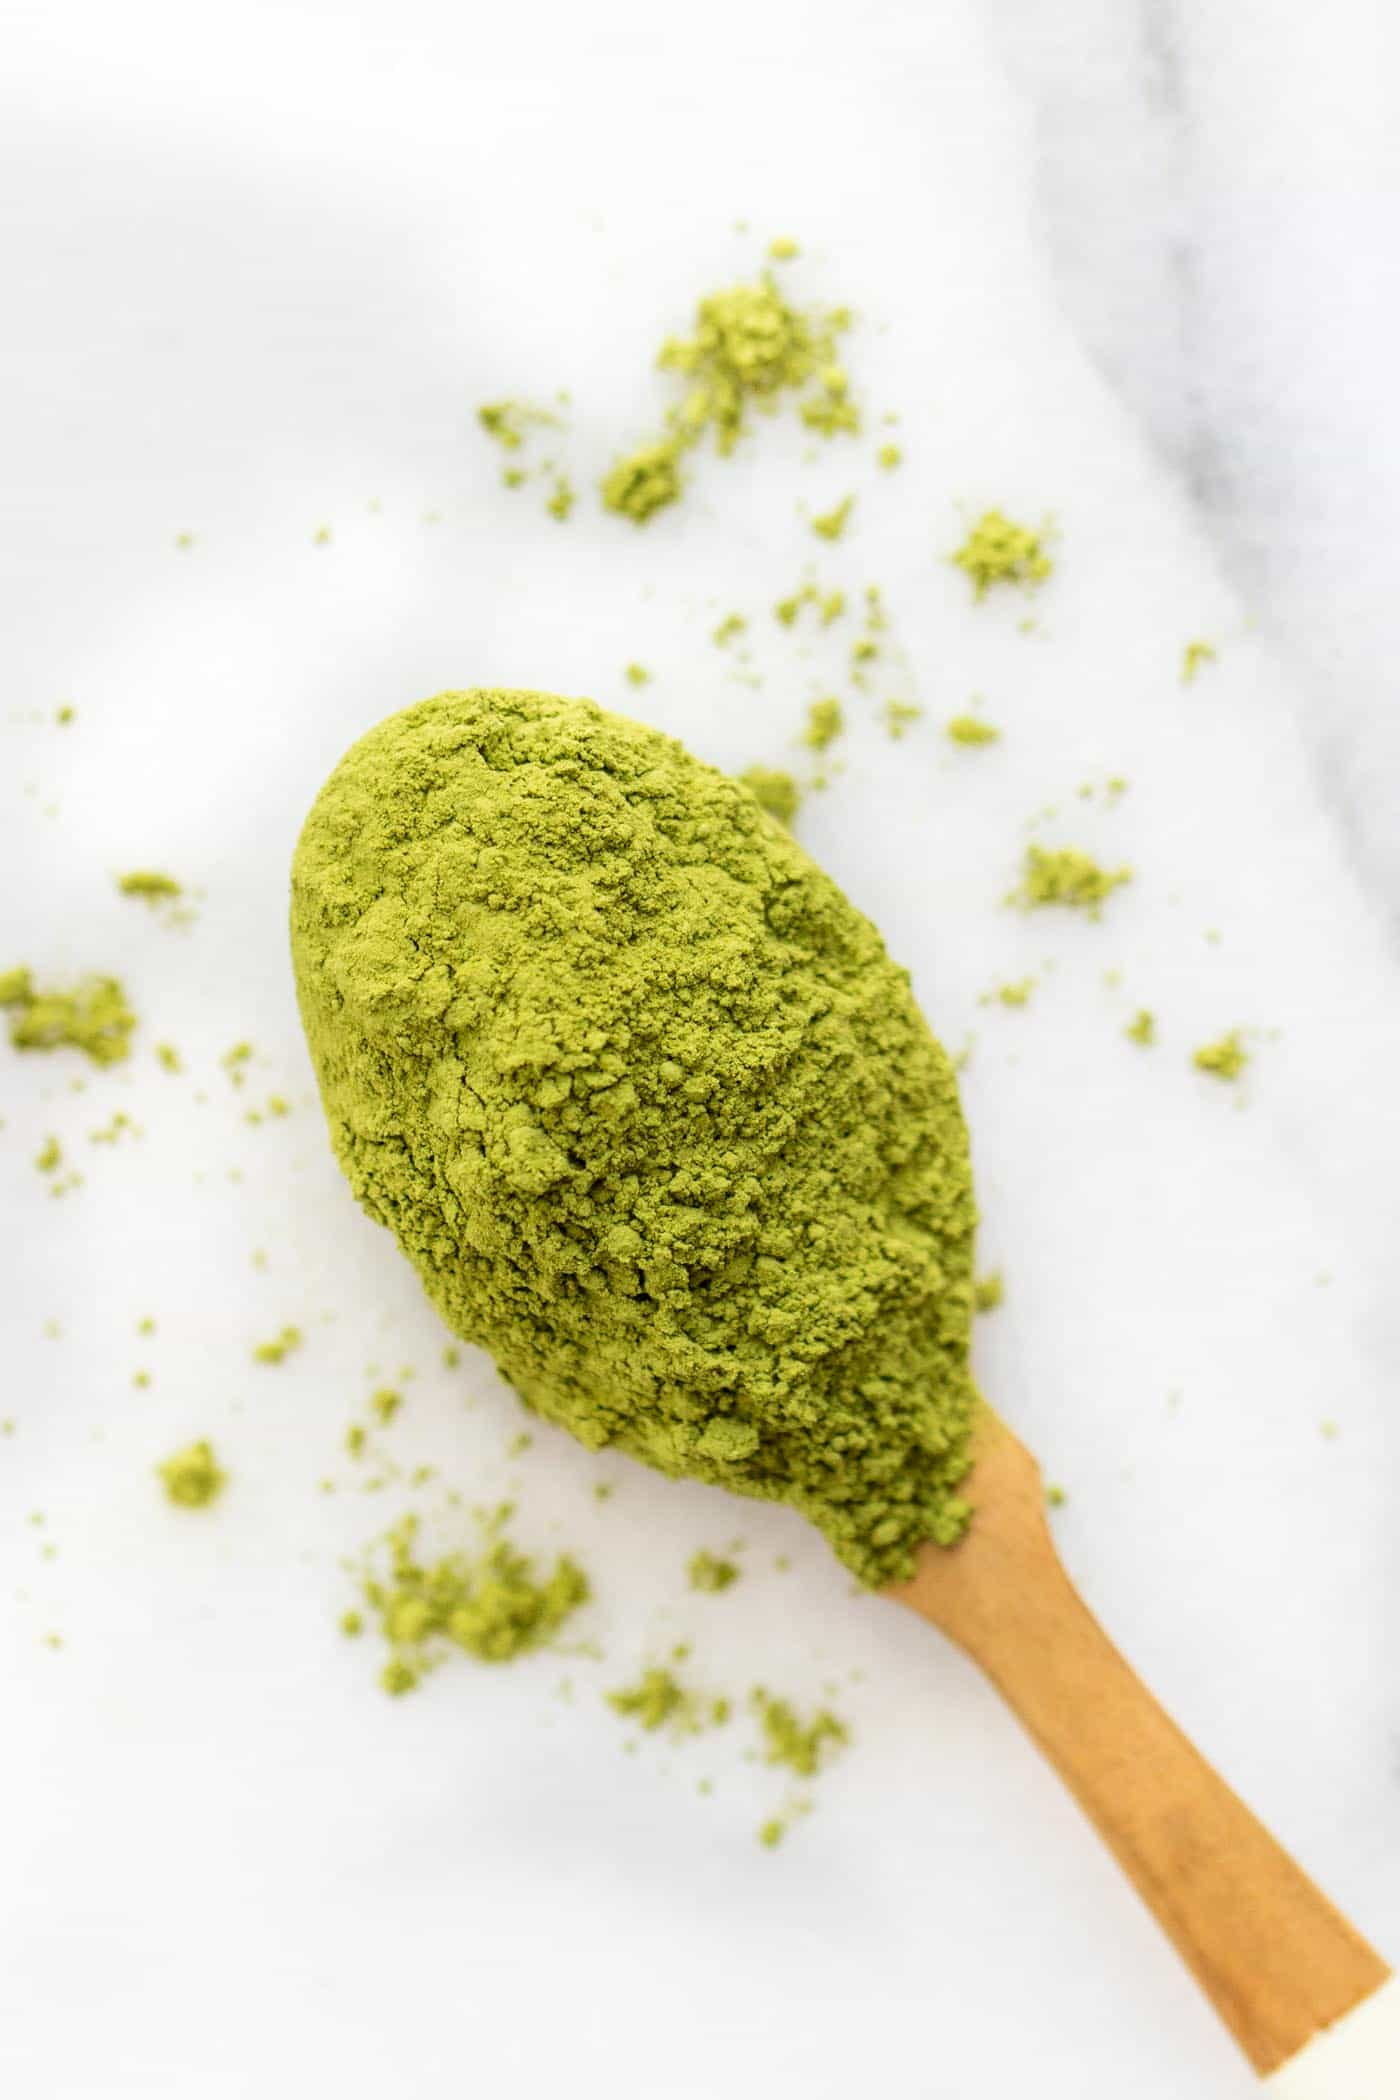 Matcha Green Tea Latte - the perfect alternative to coffee and a delicious way to start your morning